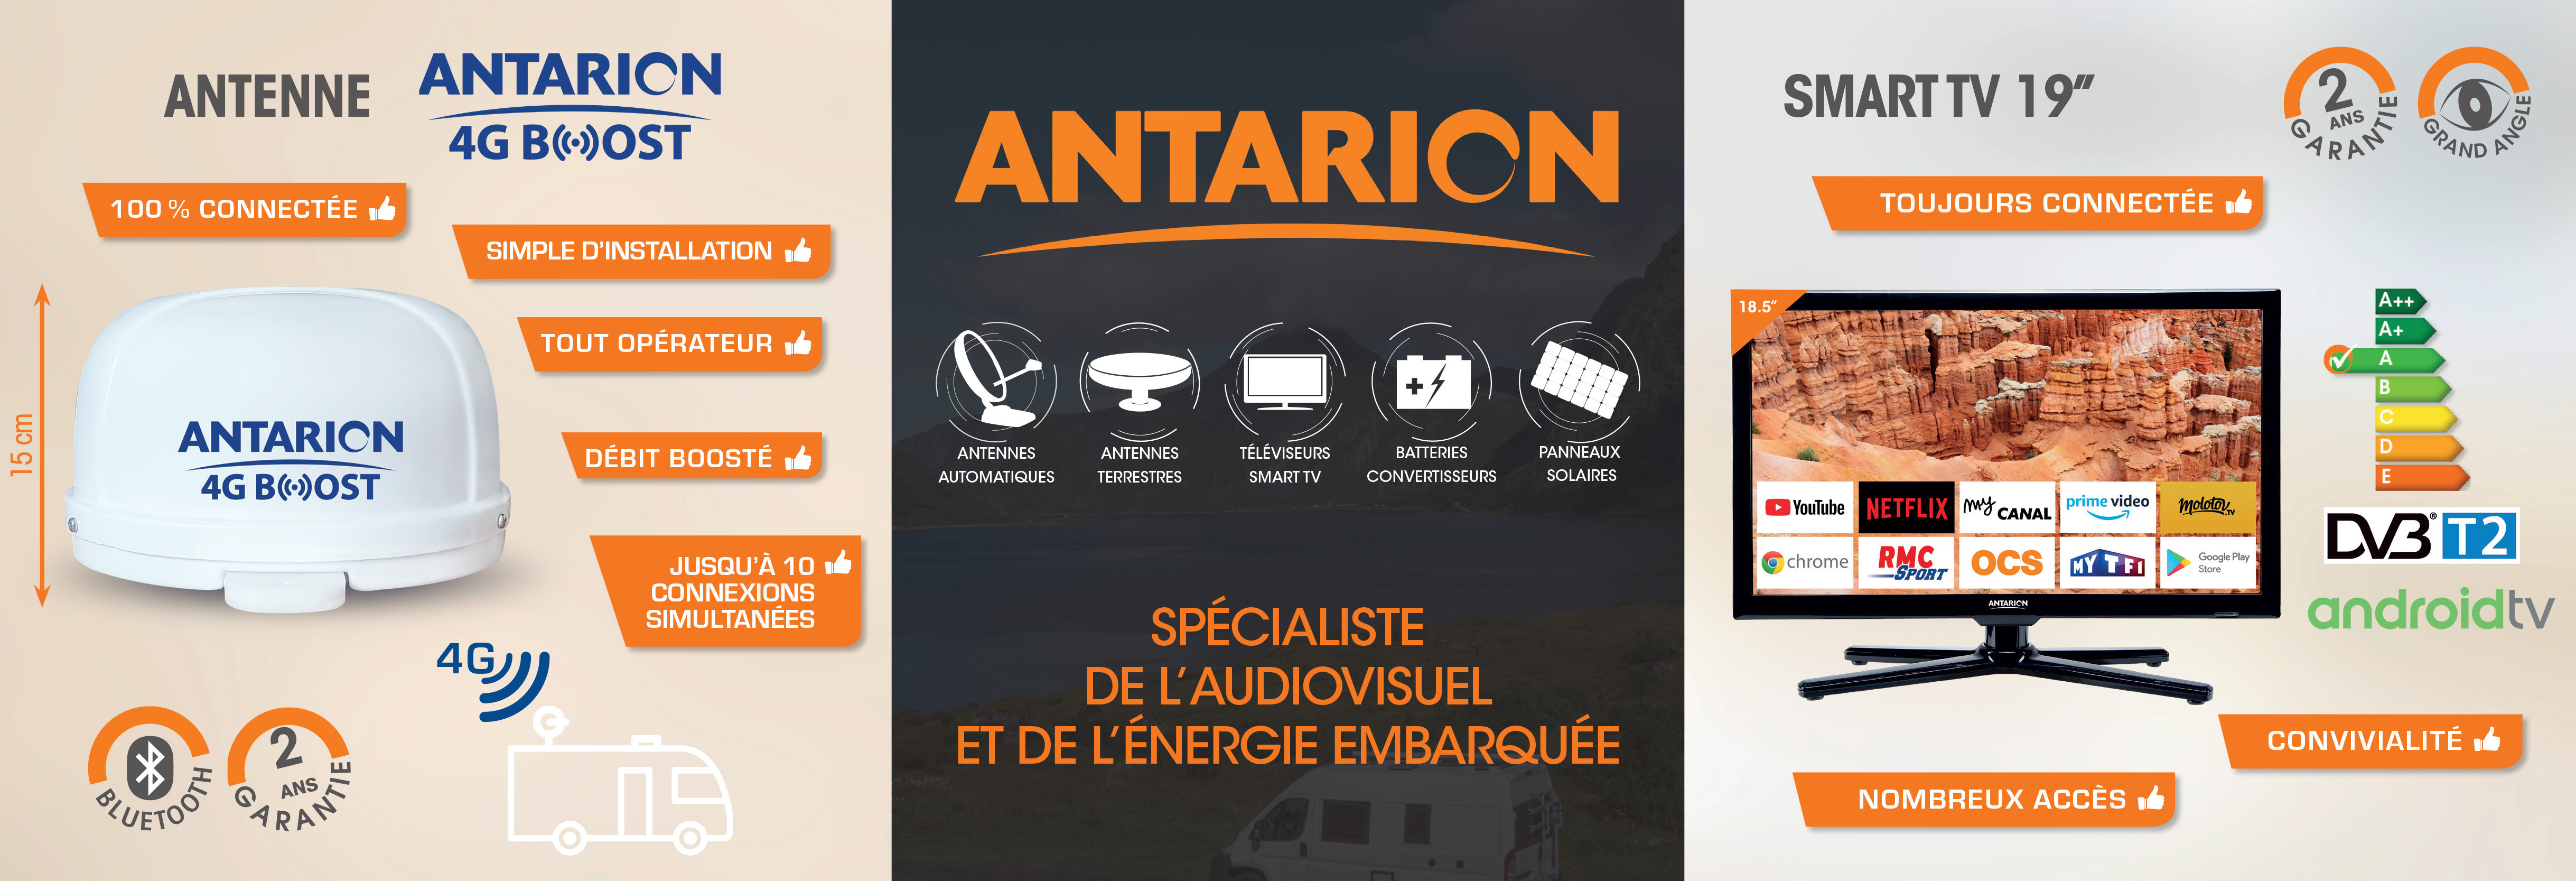 ANTARION